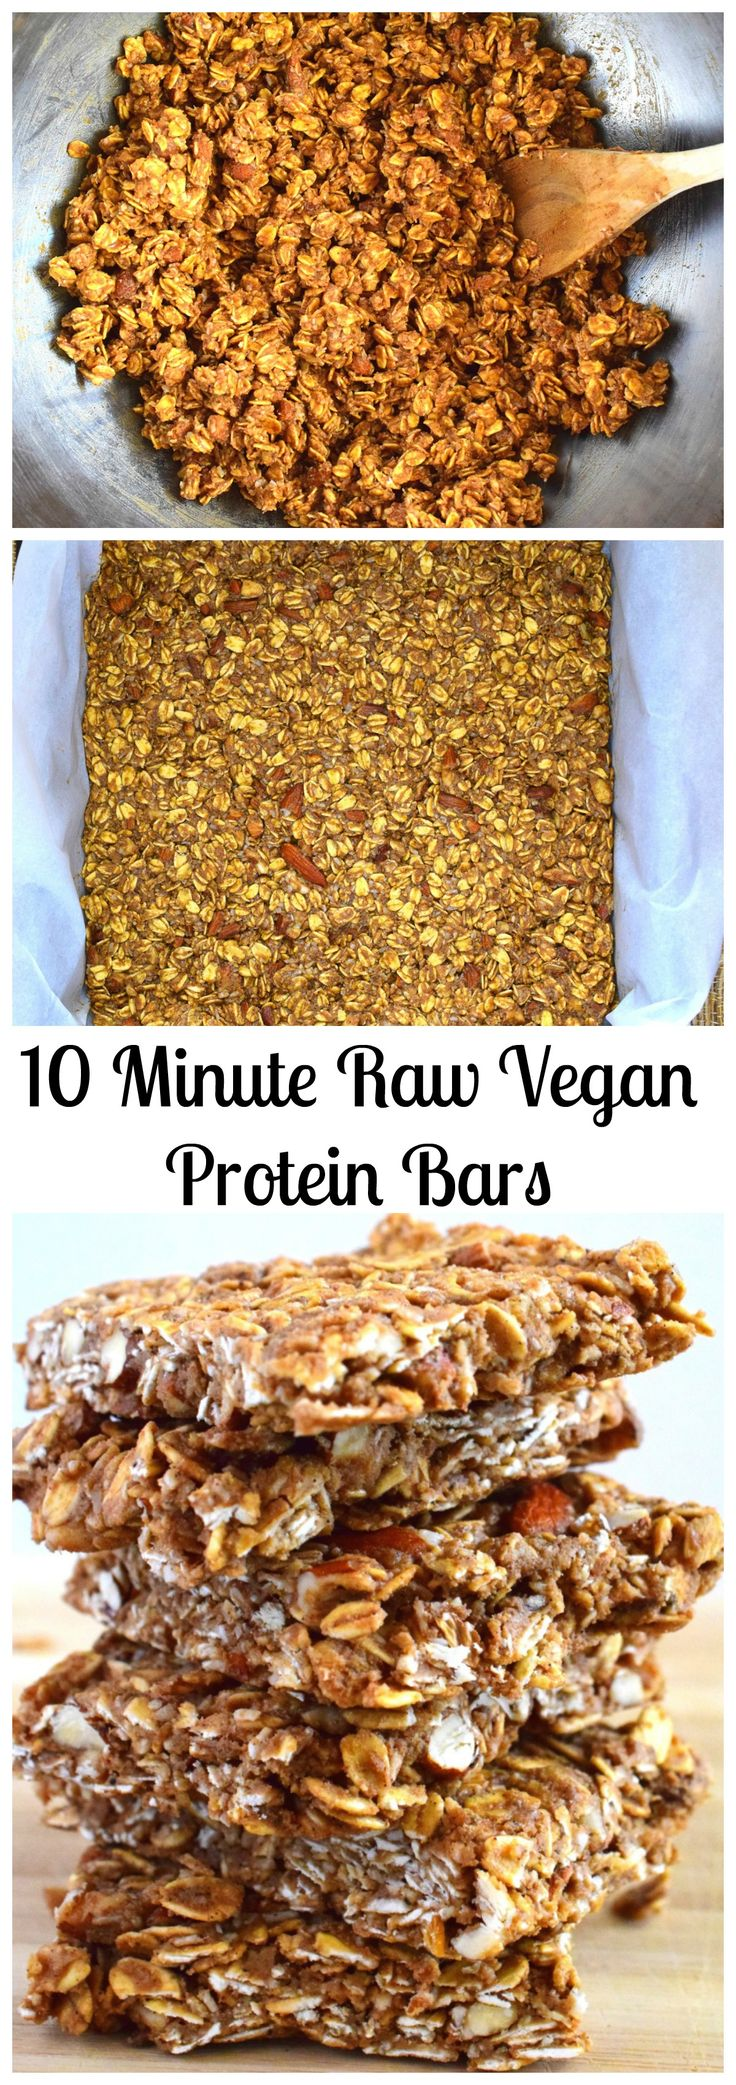 10 Minute Raw Vegan Protein Bars made with Sunwarrior Protein Powder, so good!